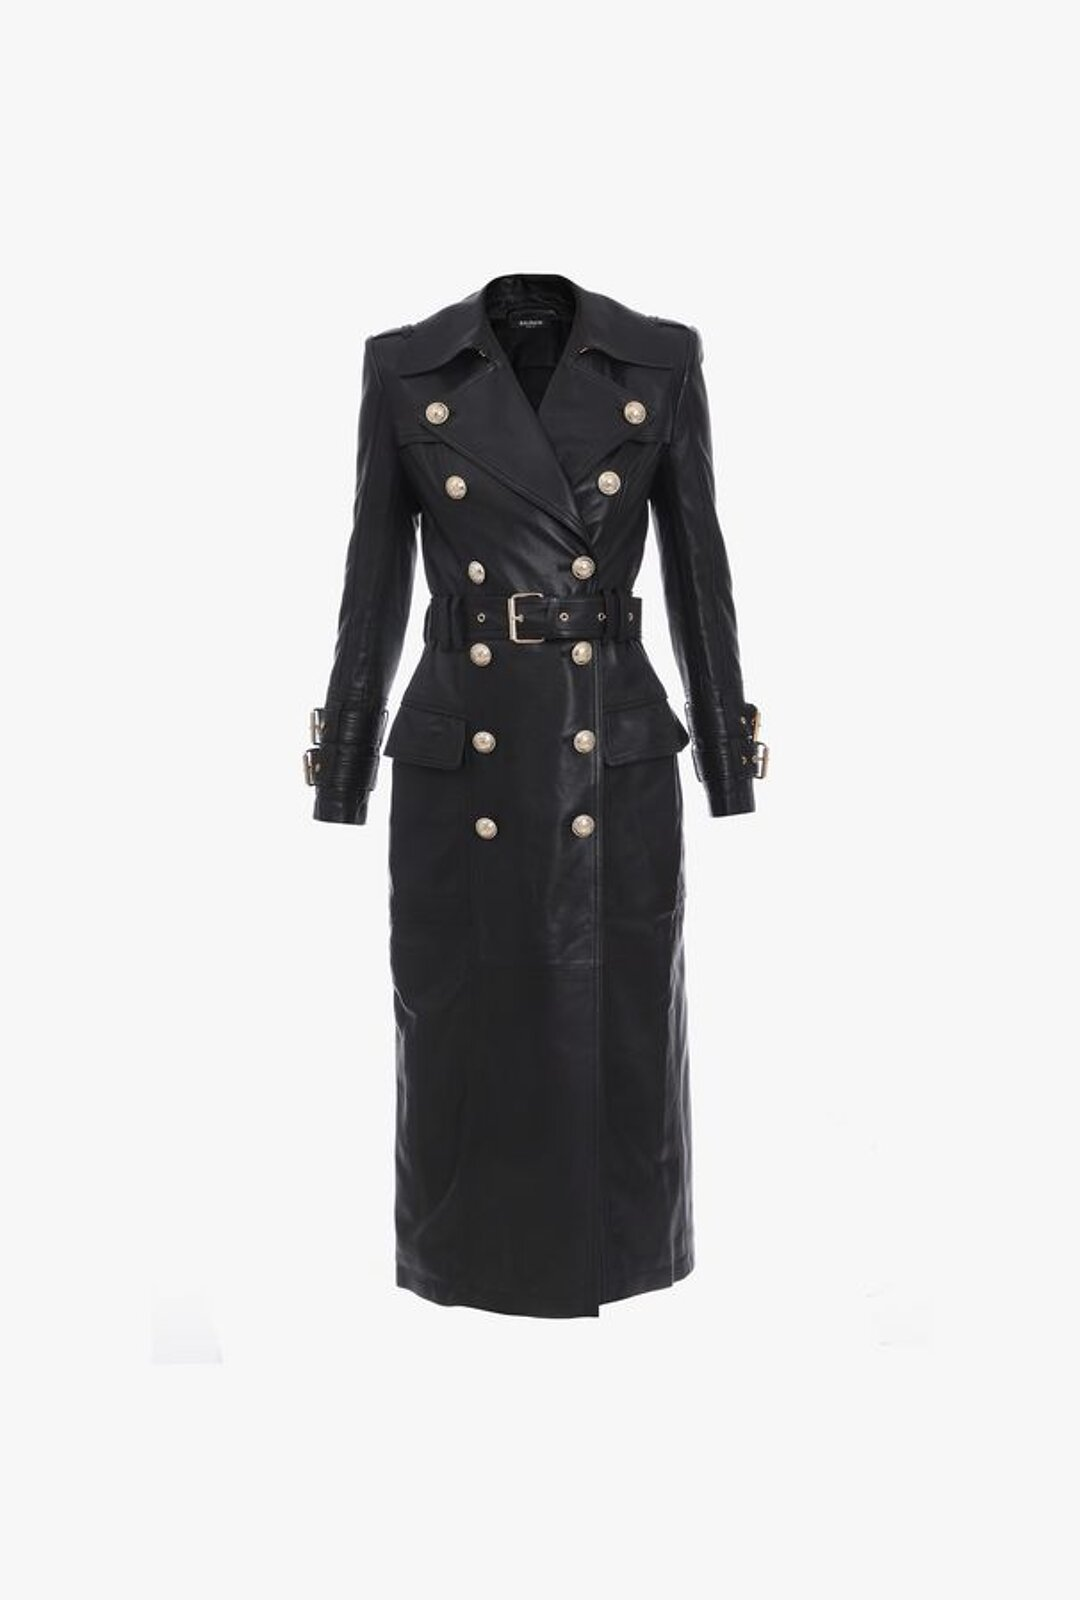 Long Black Leather Trench Coat - Balmain